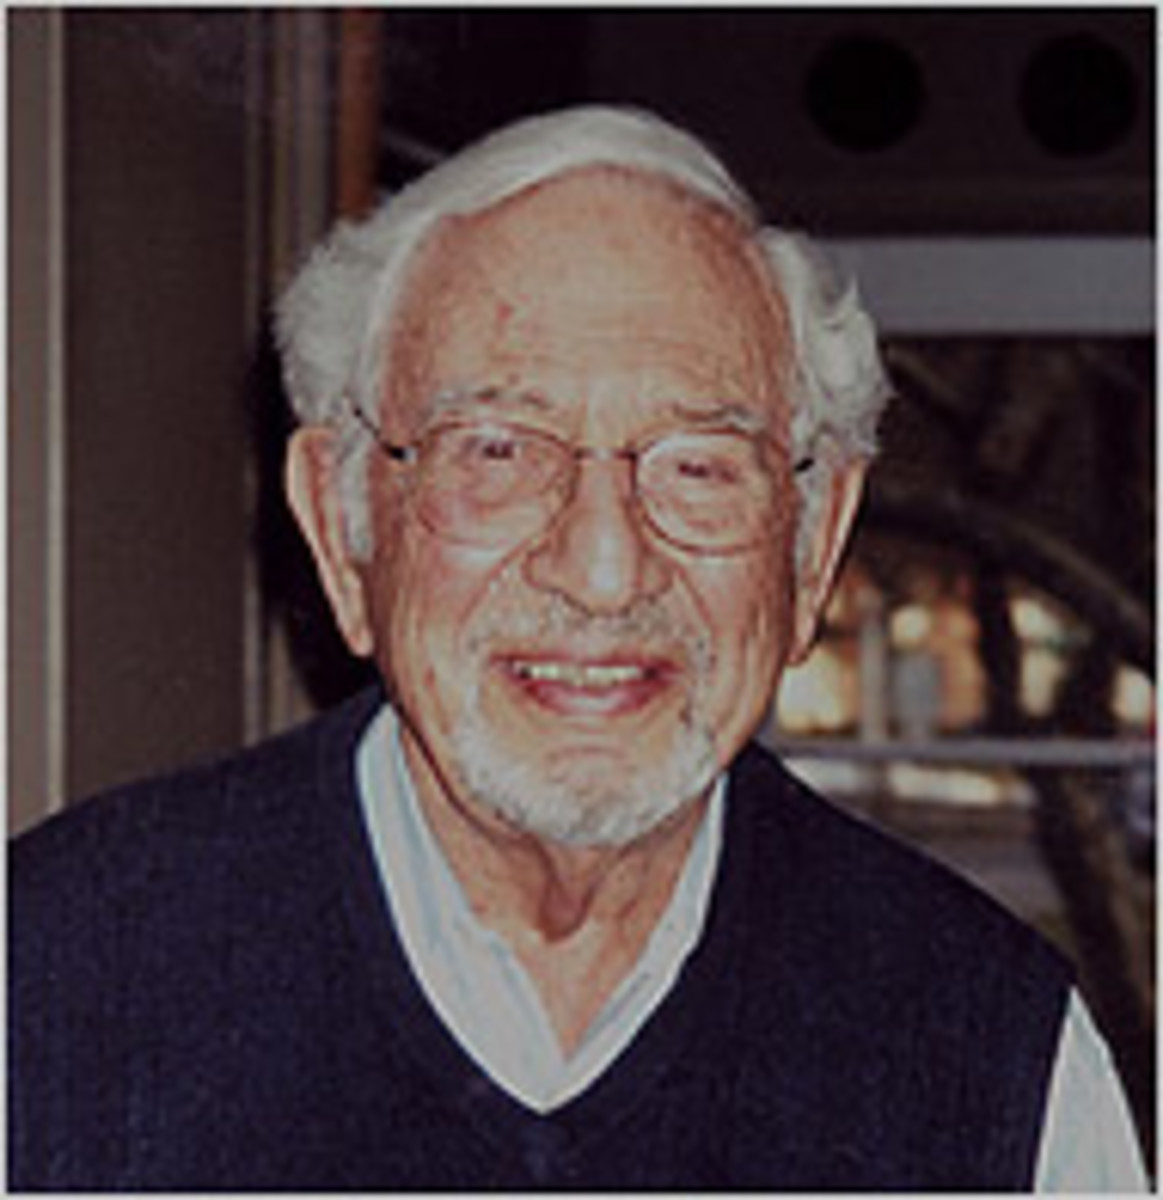 Dr. Galston died in 1988